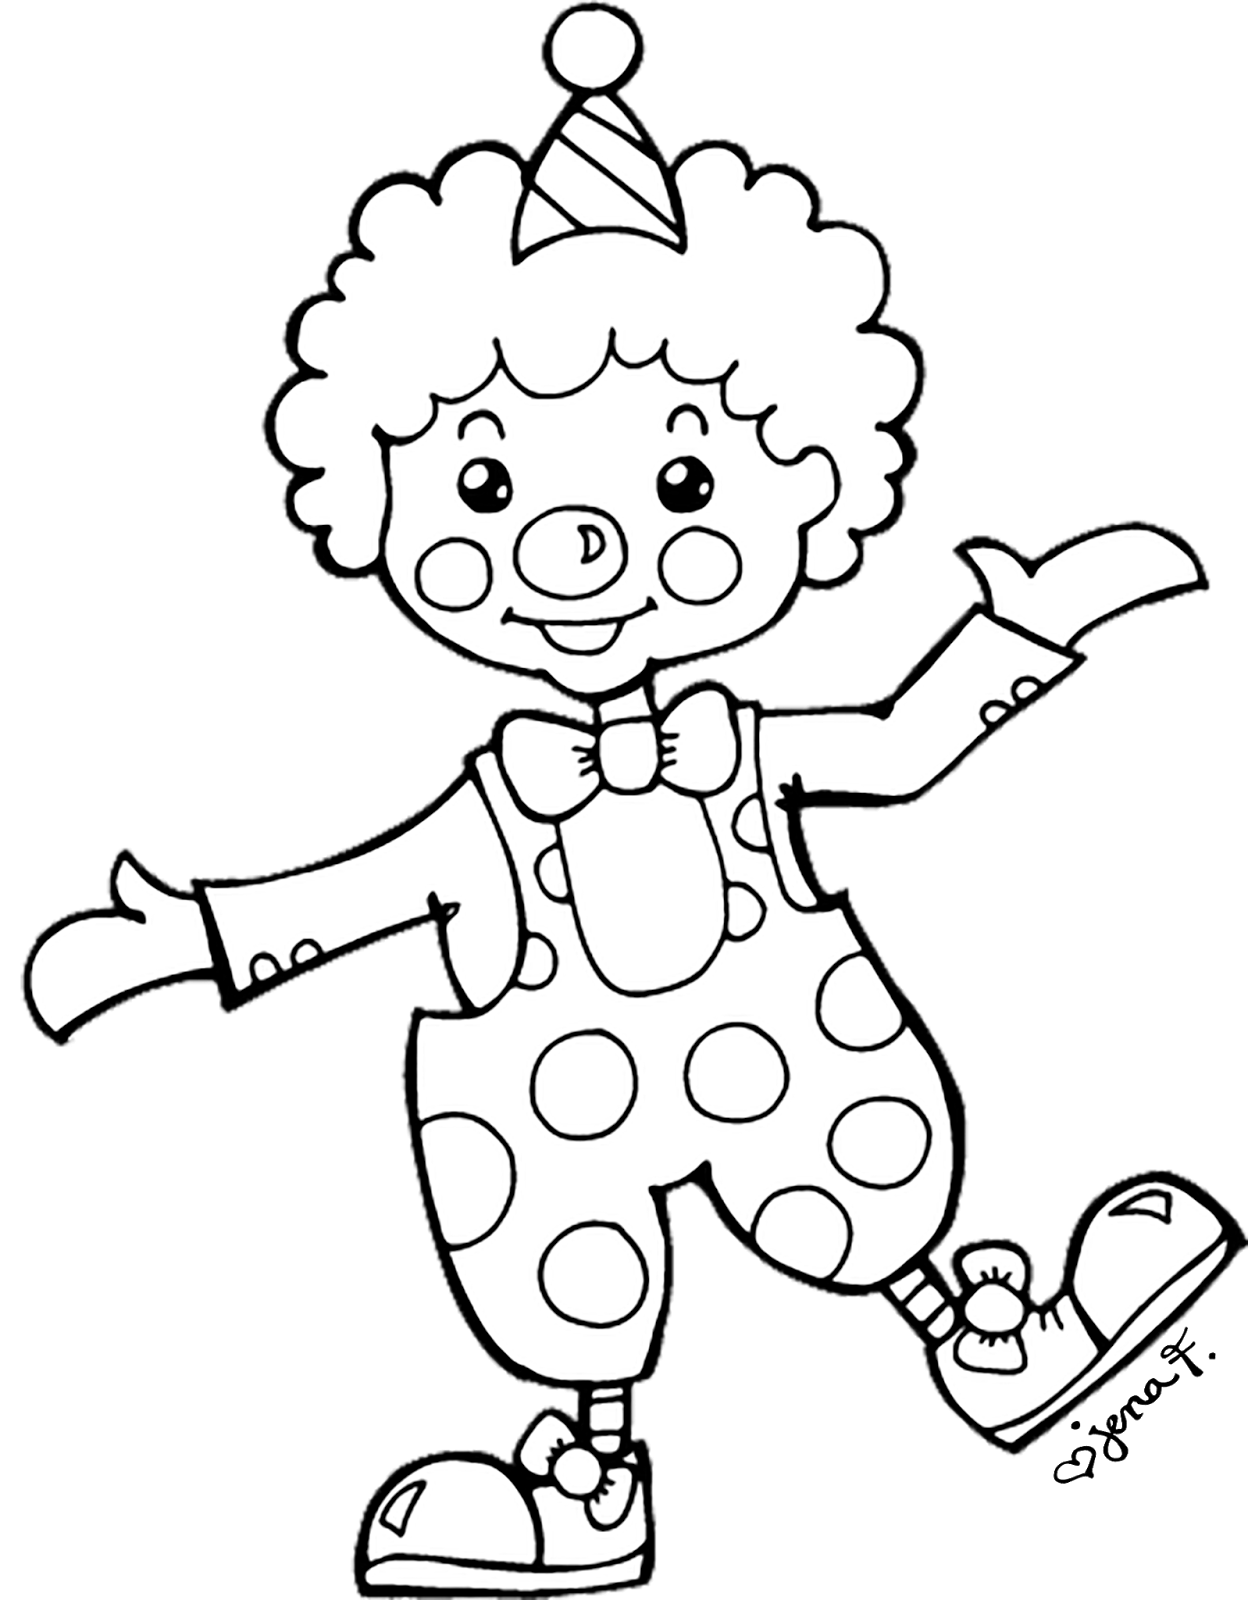 Drawing at getdrawings com. Clown clipart simple picture black and white